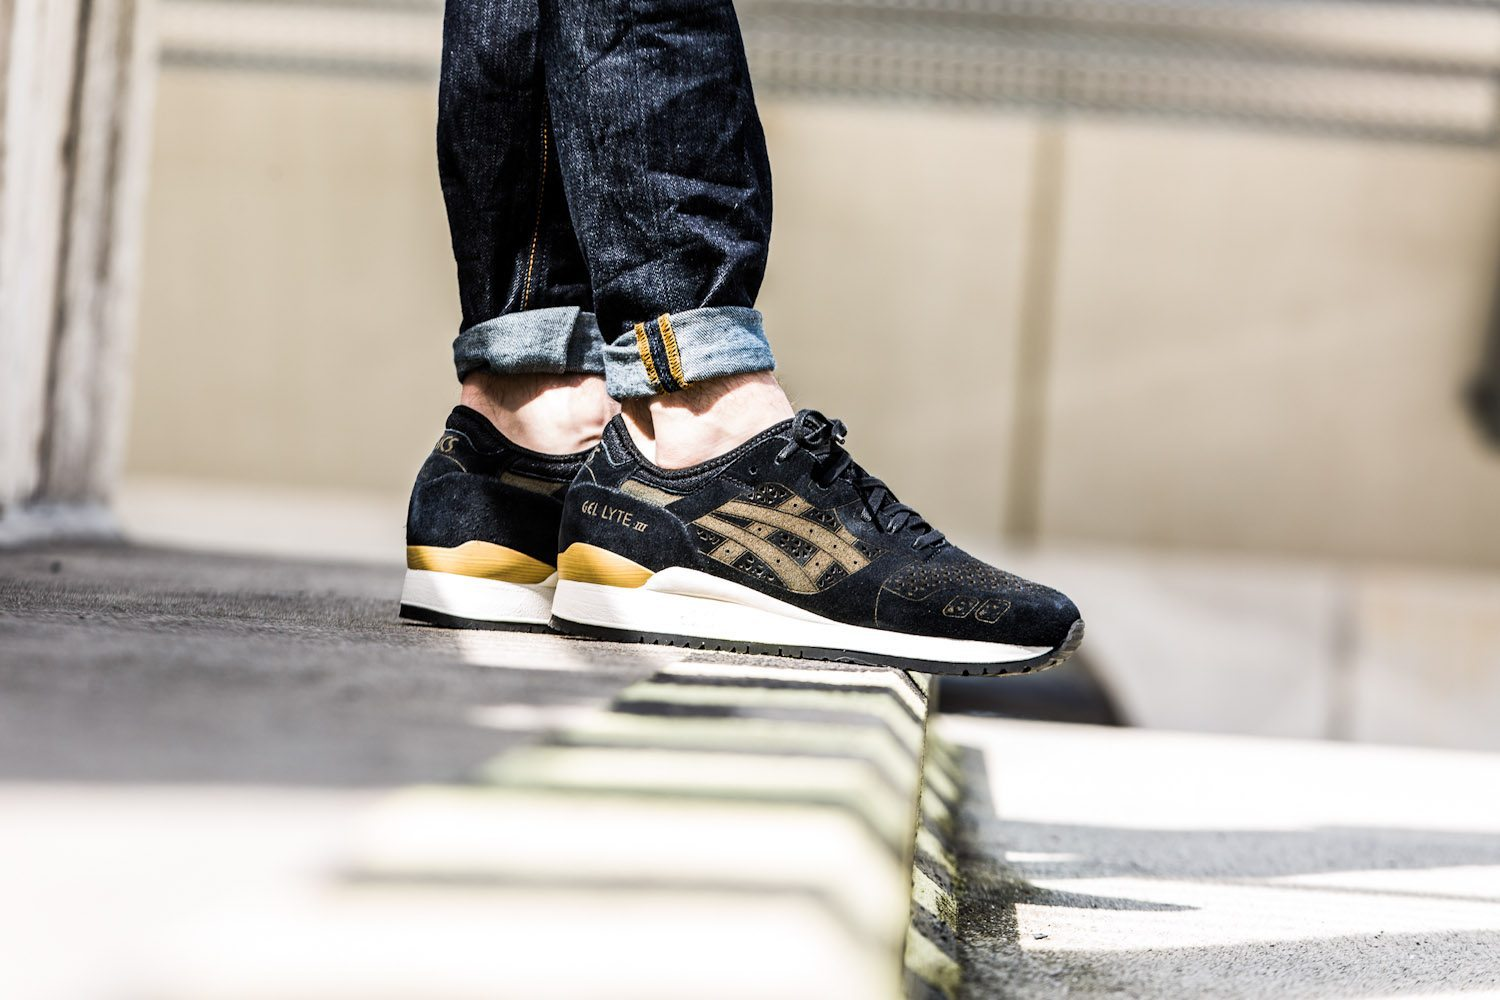 Asics Gel Lyte III Laser Cut Pack 5